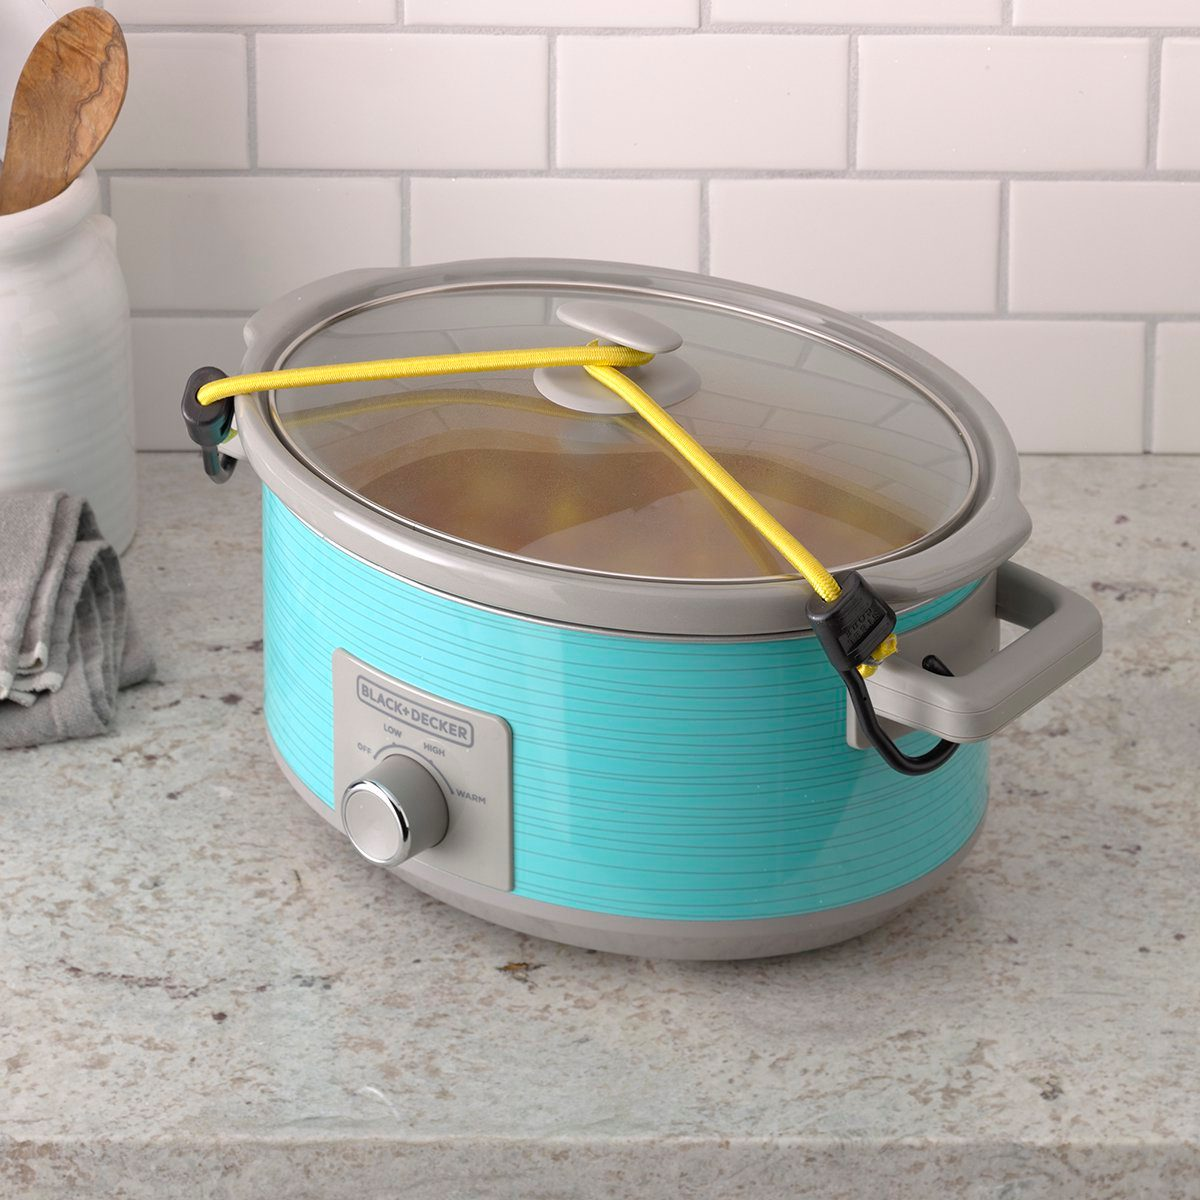 Slow cooker with bungee cord tied on for safe traveling.